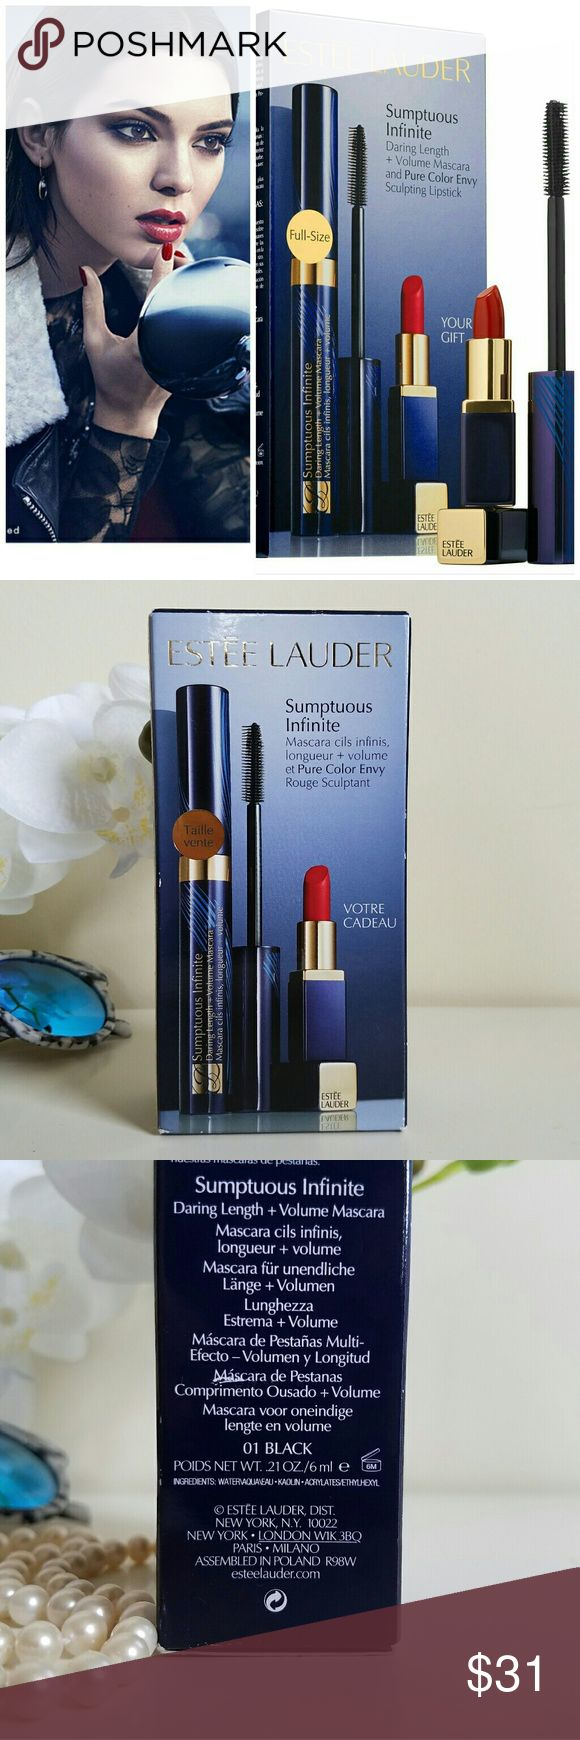 Estee Lauder Mascara and Lipstick duo set Sumptuous Infinite Daring Length + Volume Mascara and Pure Color Envy Sculpting Lipstick. A duo with a full-size mascara and a deluxe-size, free gift of Pure Color Envy Lipstick. Get this lip and eye duo for long, lush, limitless lashes and sculpted lips. This set contains:  0.21 oz Sumptuous Infinite Daring Length + Volume Mascara in 01 Black  0.04 oz Pure Color Envy Sculpting Lipstick in 04 Envious   What it is formulated WITHOUT: Parabens…